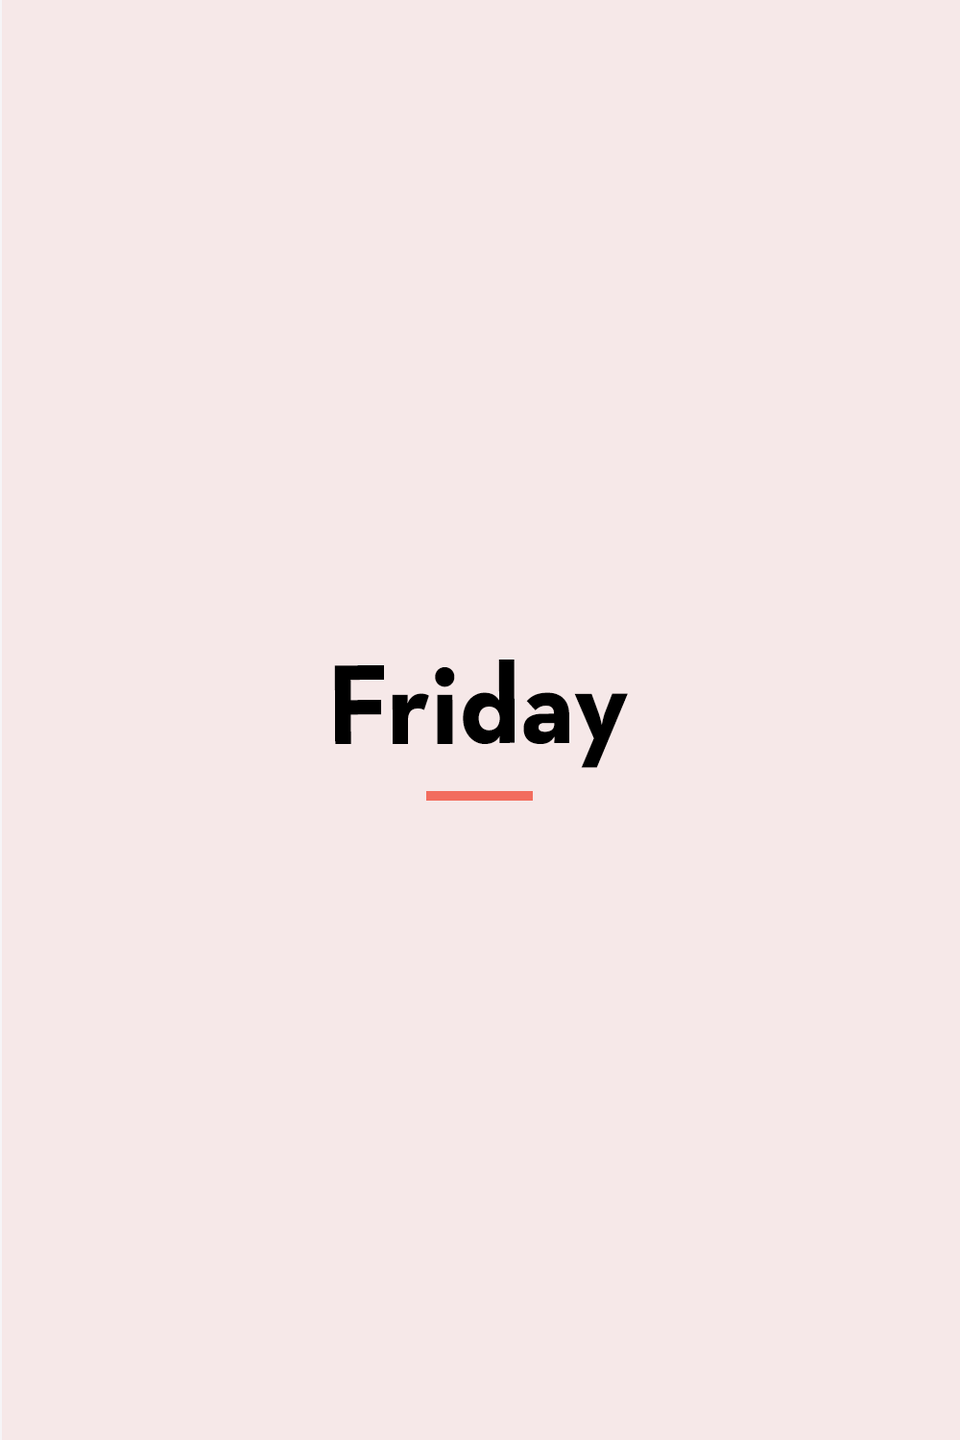 """<p>Who doesn't love Friday? Italians, in fact. When parents in the country named their son Venerdi, the Italian word for """"Friday,"""" the courts ruled that it fell into the """"ridiculous or shameful"""" category of names and ordered it changed. According to NBC news, """"<a href=""""http://www.nbcnews.com/id/22326746/ns/world_news-weird_news/t/italian-court-says-baby-cant-be-named-friday/#.XP_LmhJKg2I"""" rel=""""nofollow noopener"""" target=""""_blank"""" data-ylk=""""slk:they ordered the boy to be named Gregorio"""" class=""""link rapid-noclick-resp"""">they ordered the boy to be named Gregorio</a> after the saint on whose day he was born.""""</p>"""